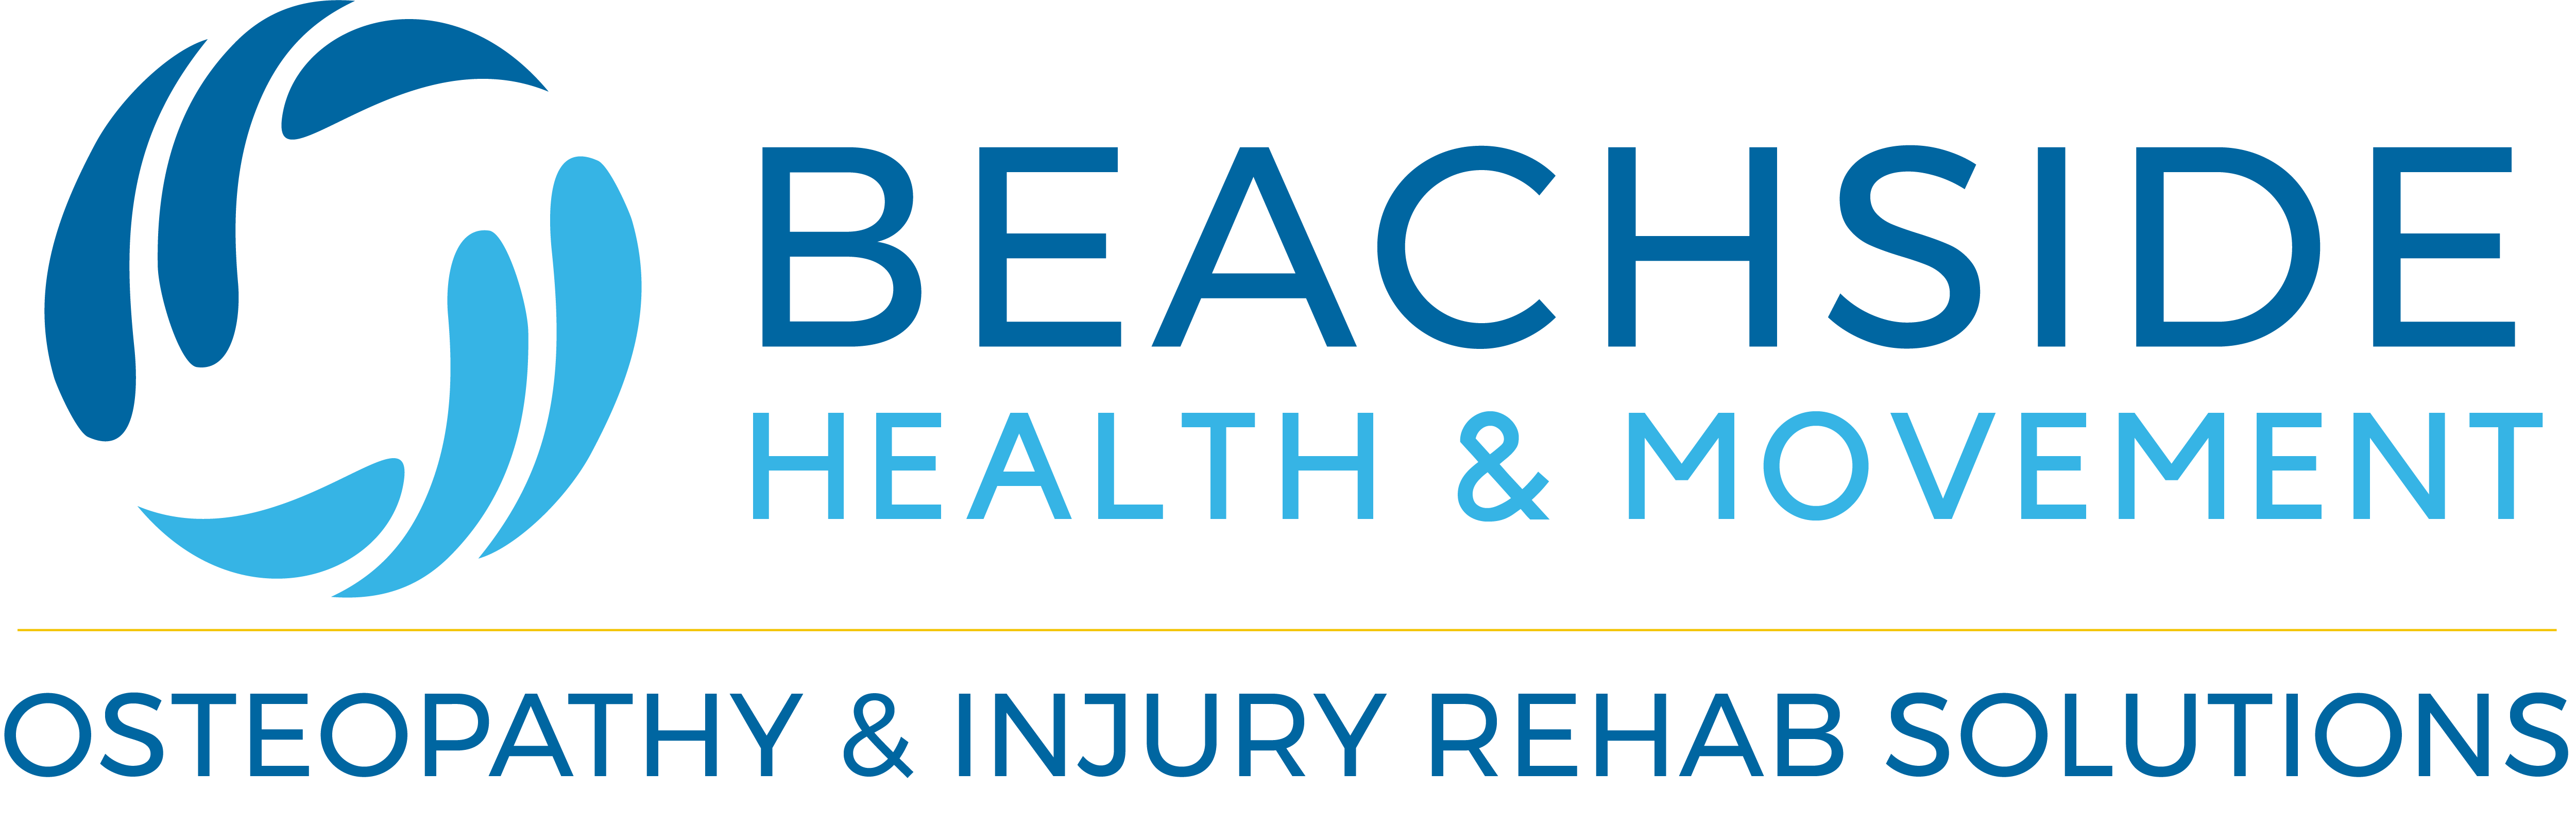 Beachside Health & Movement | Beachside Osteo